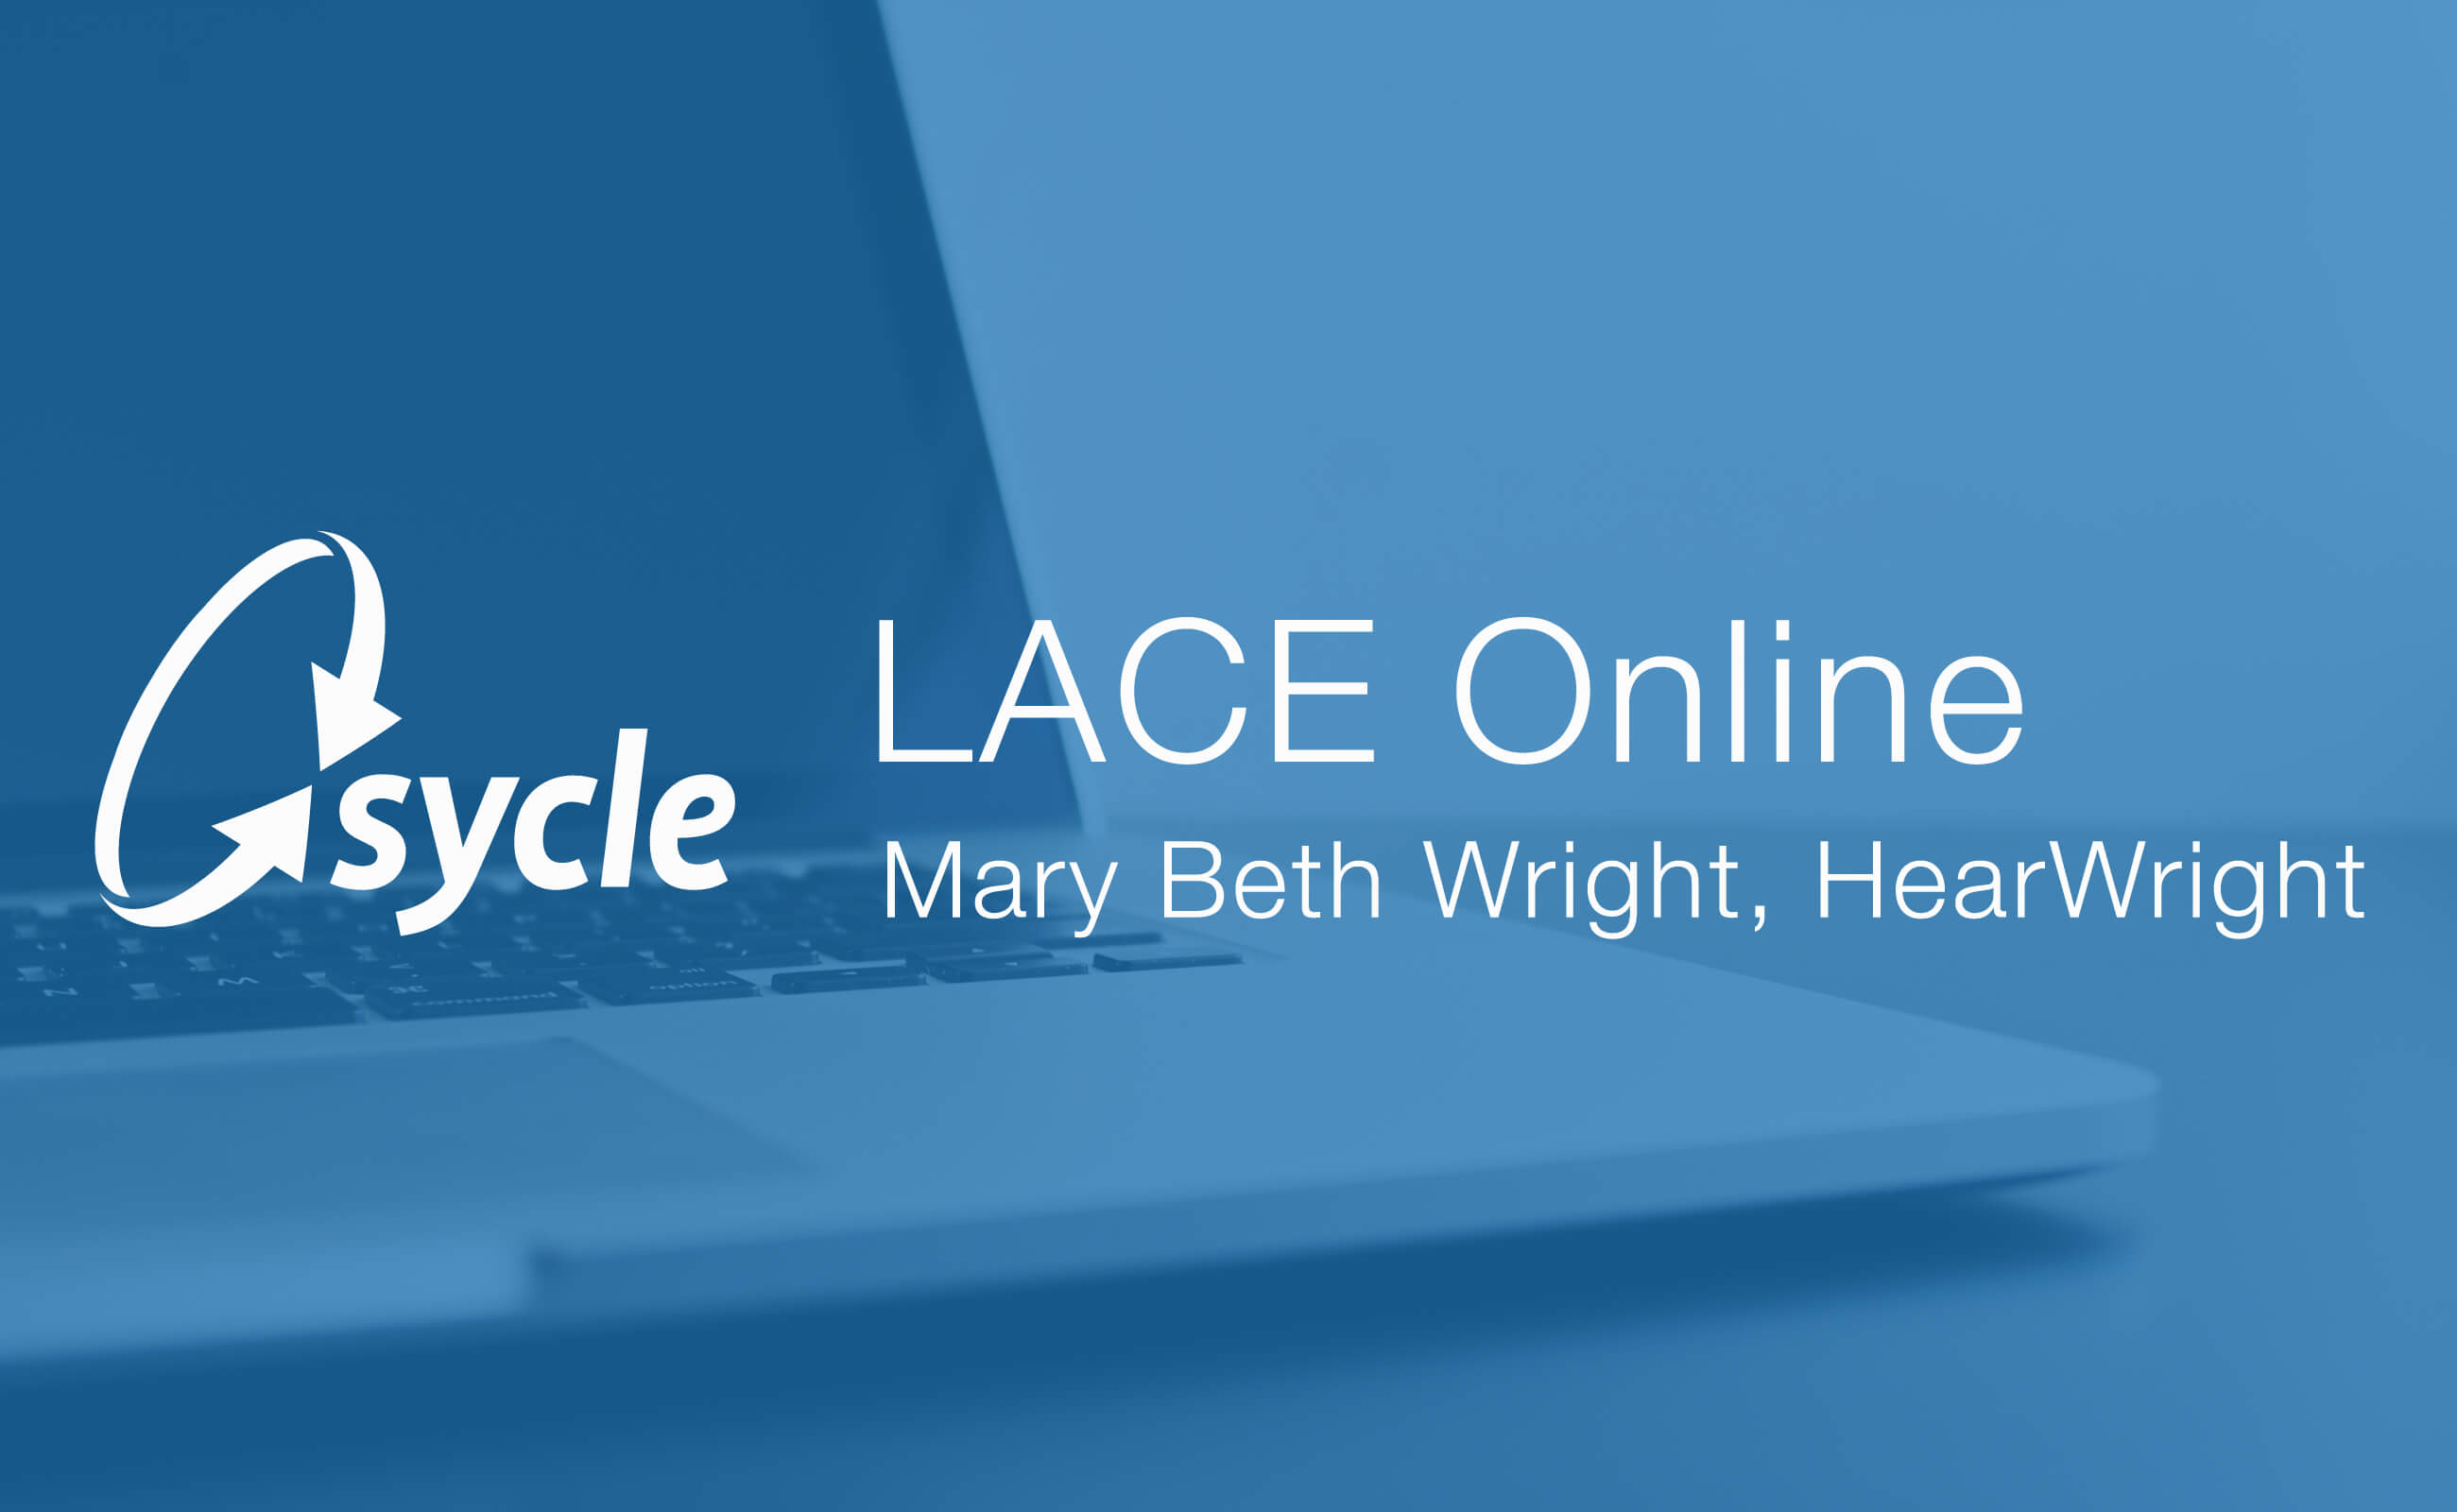 A Sycle Customer Perspective – LACE Online image